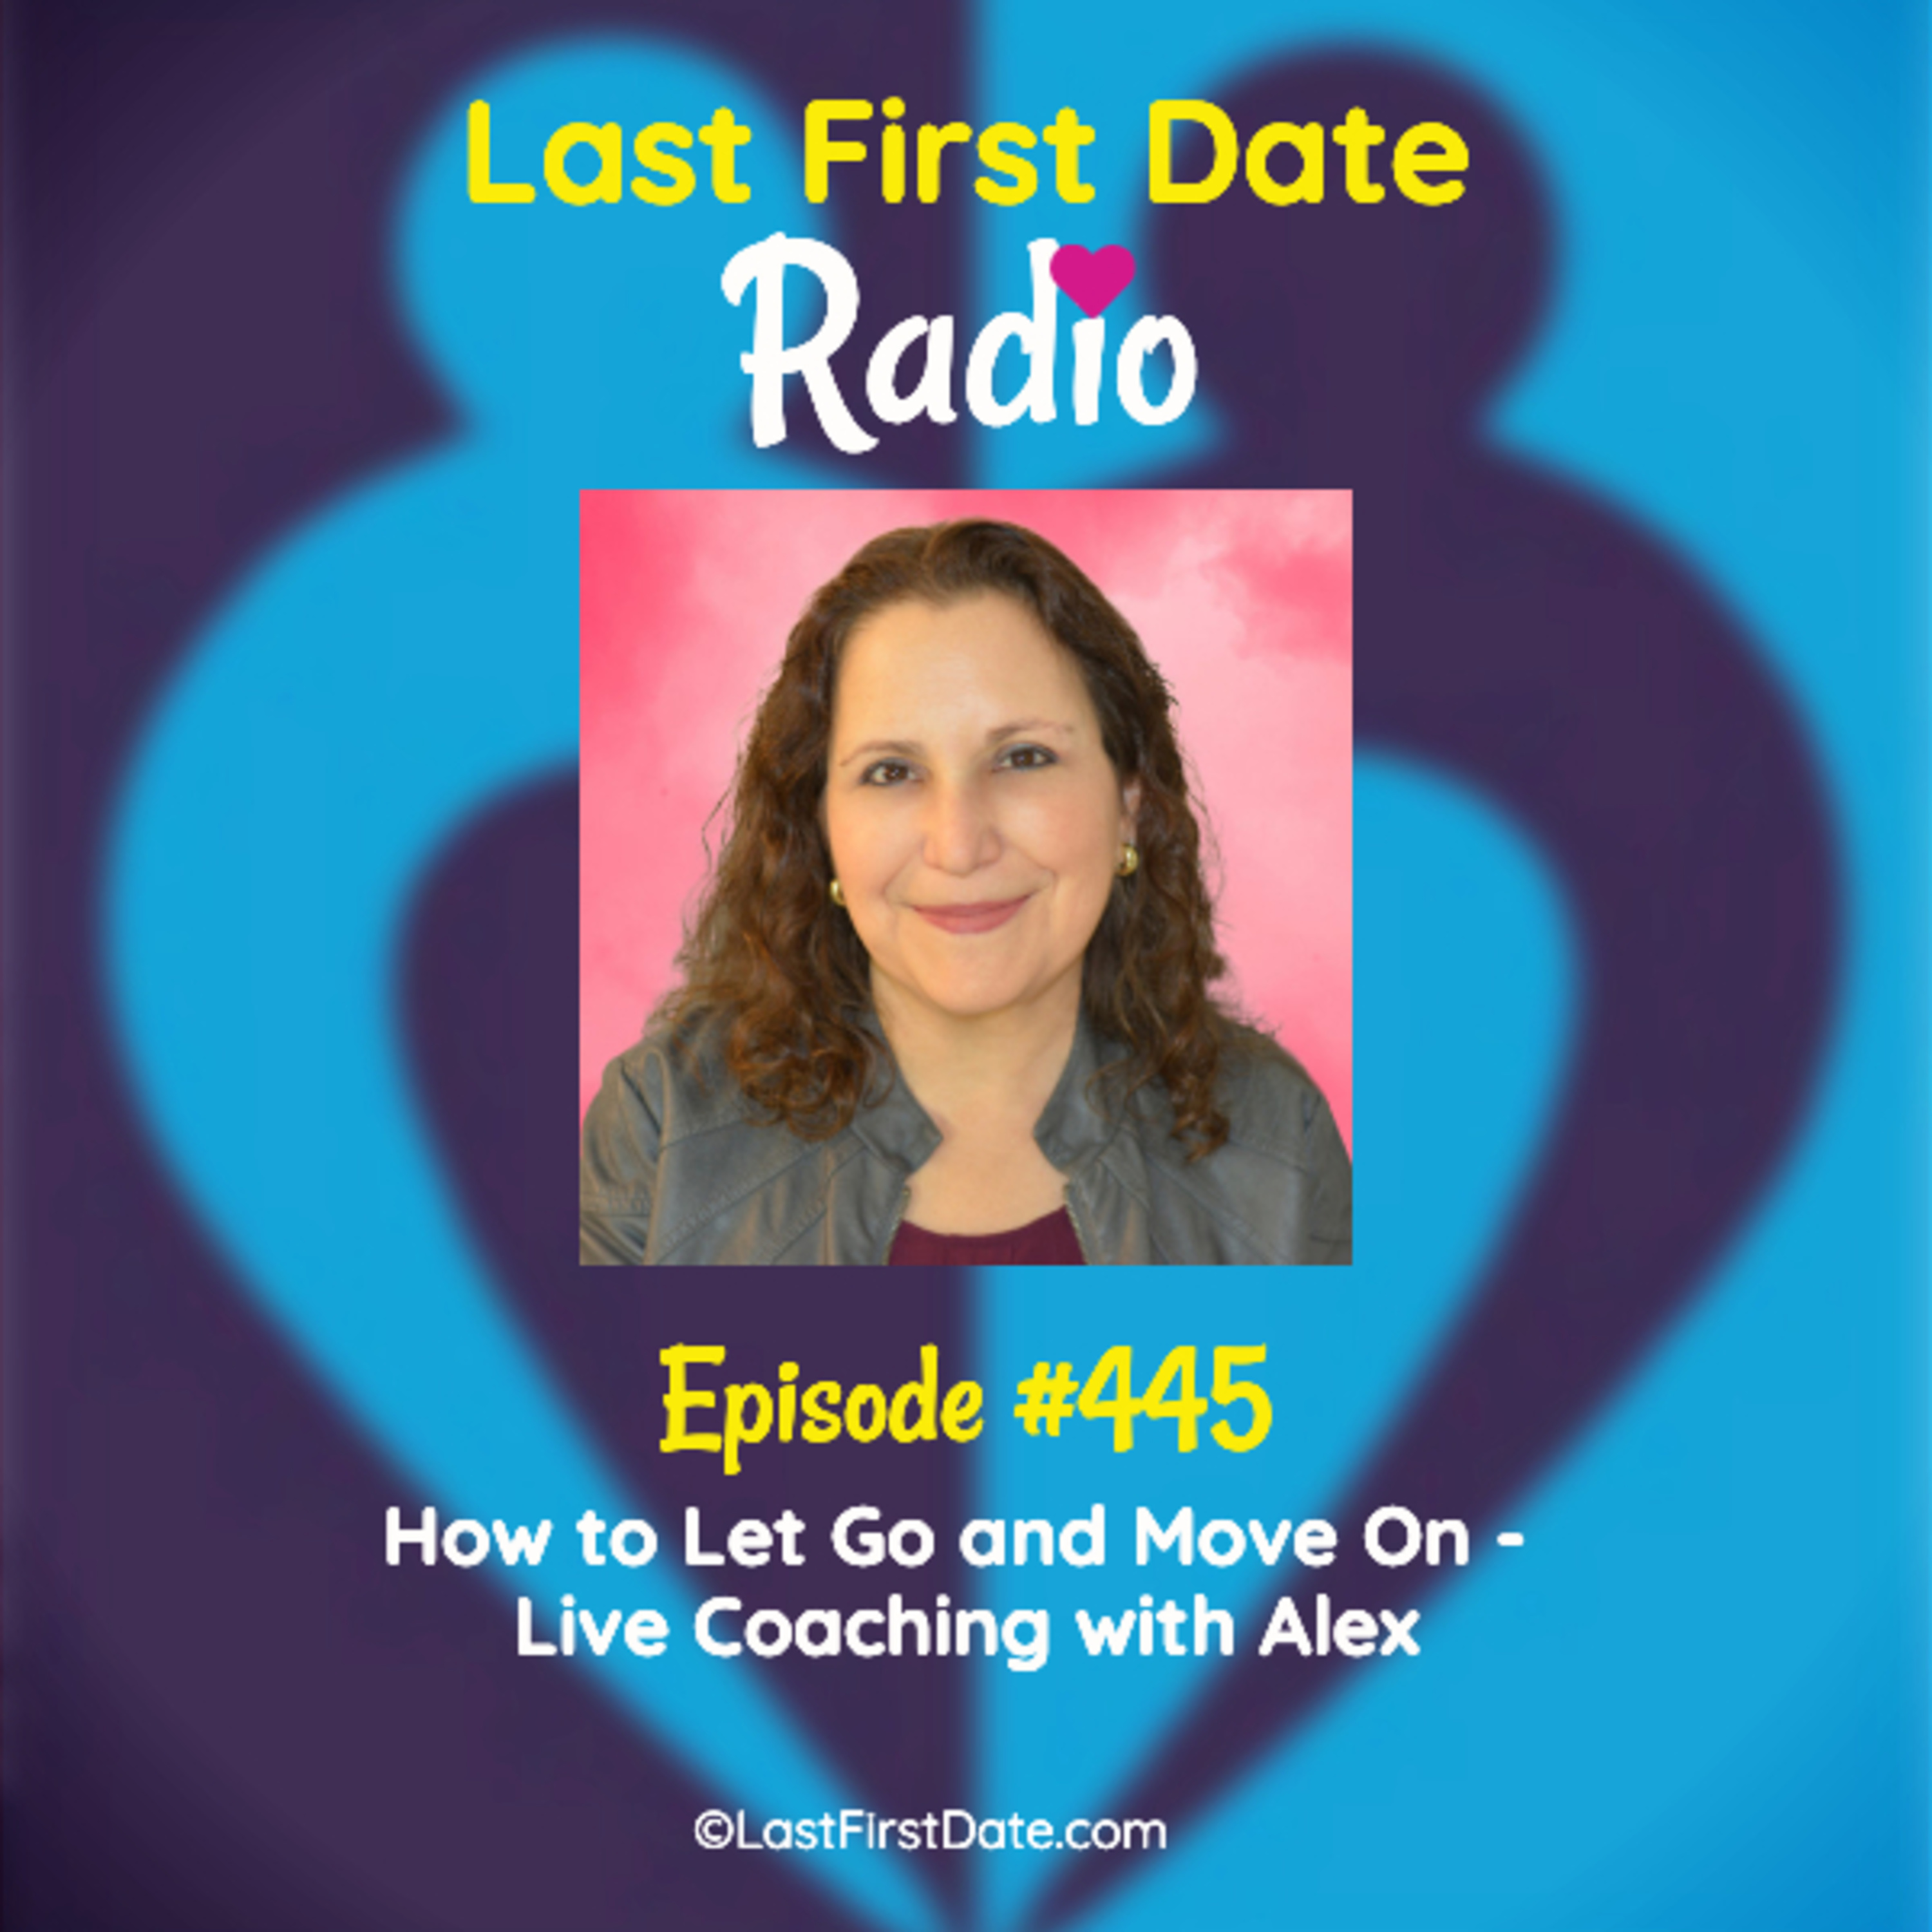 Last First Date Radio - EP 445: How to Let Go and Move On - Live Coaching with Alex